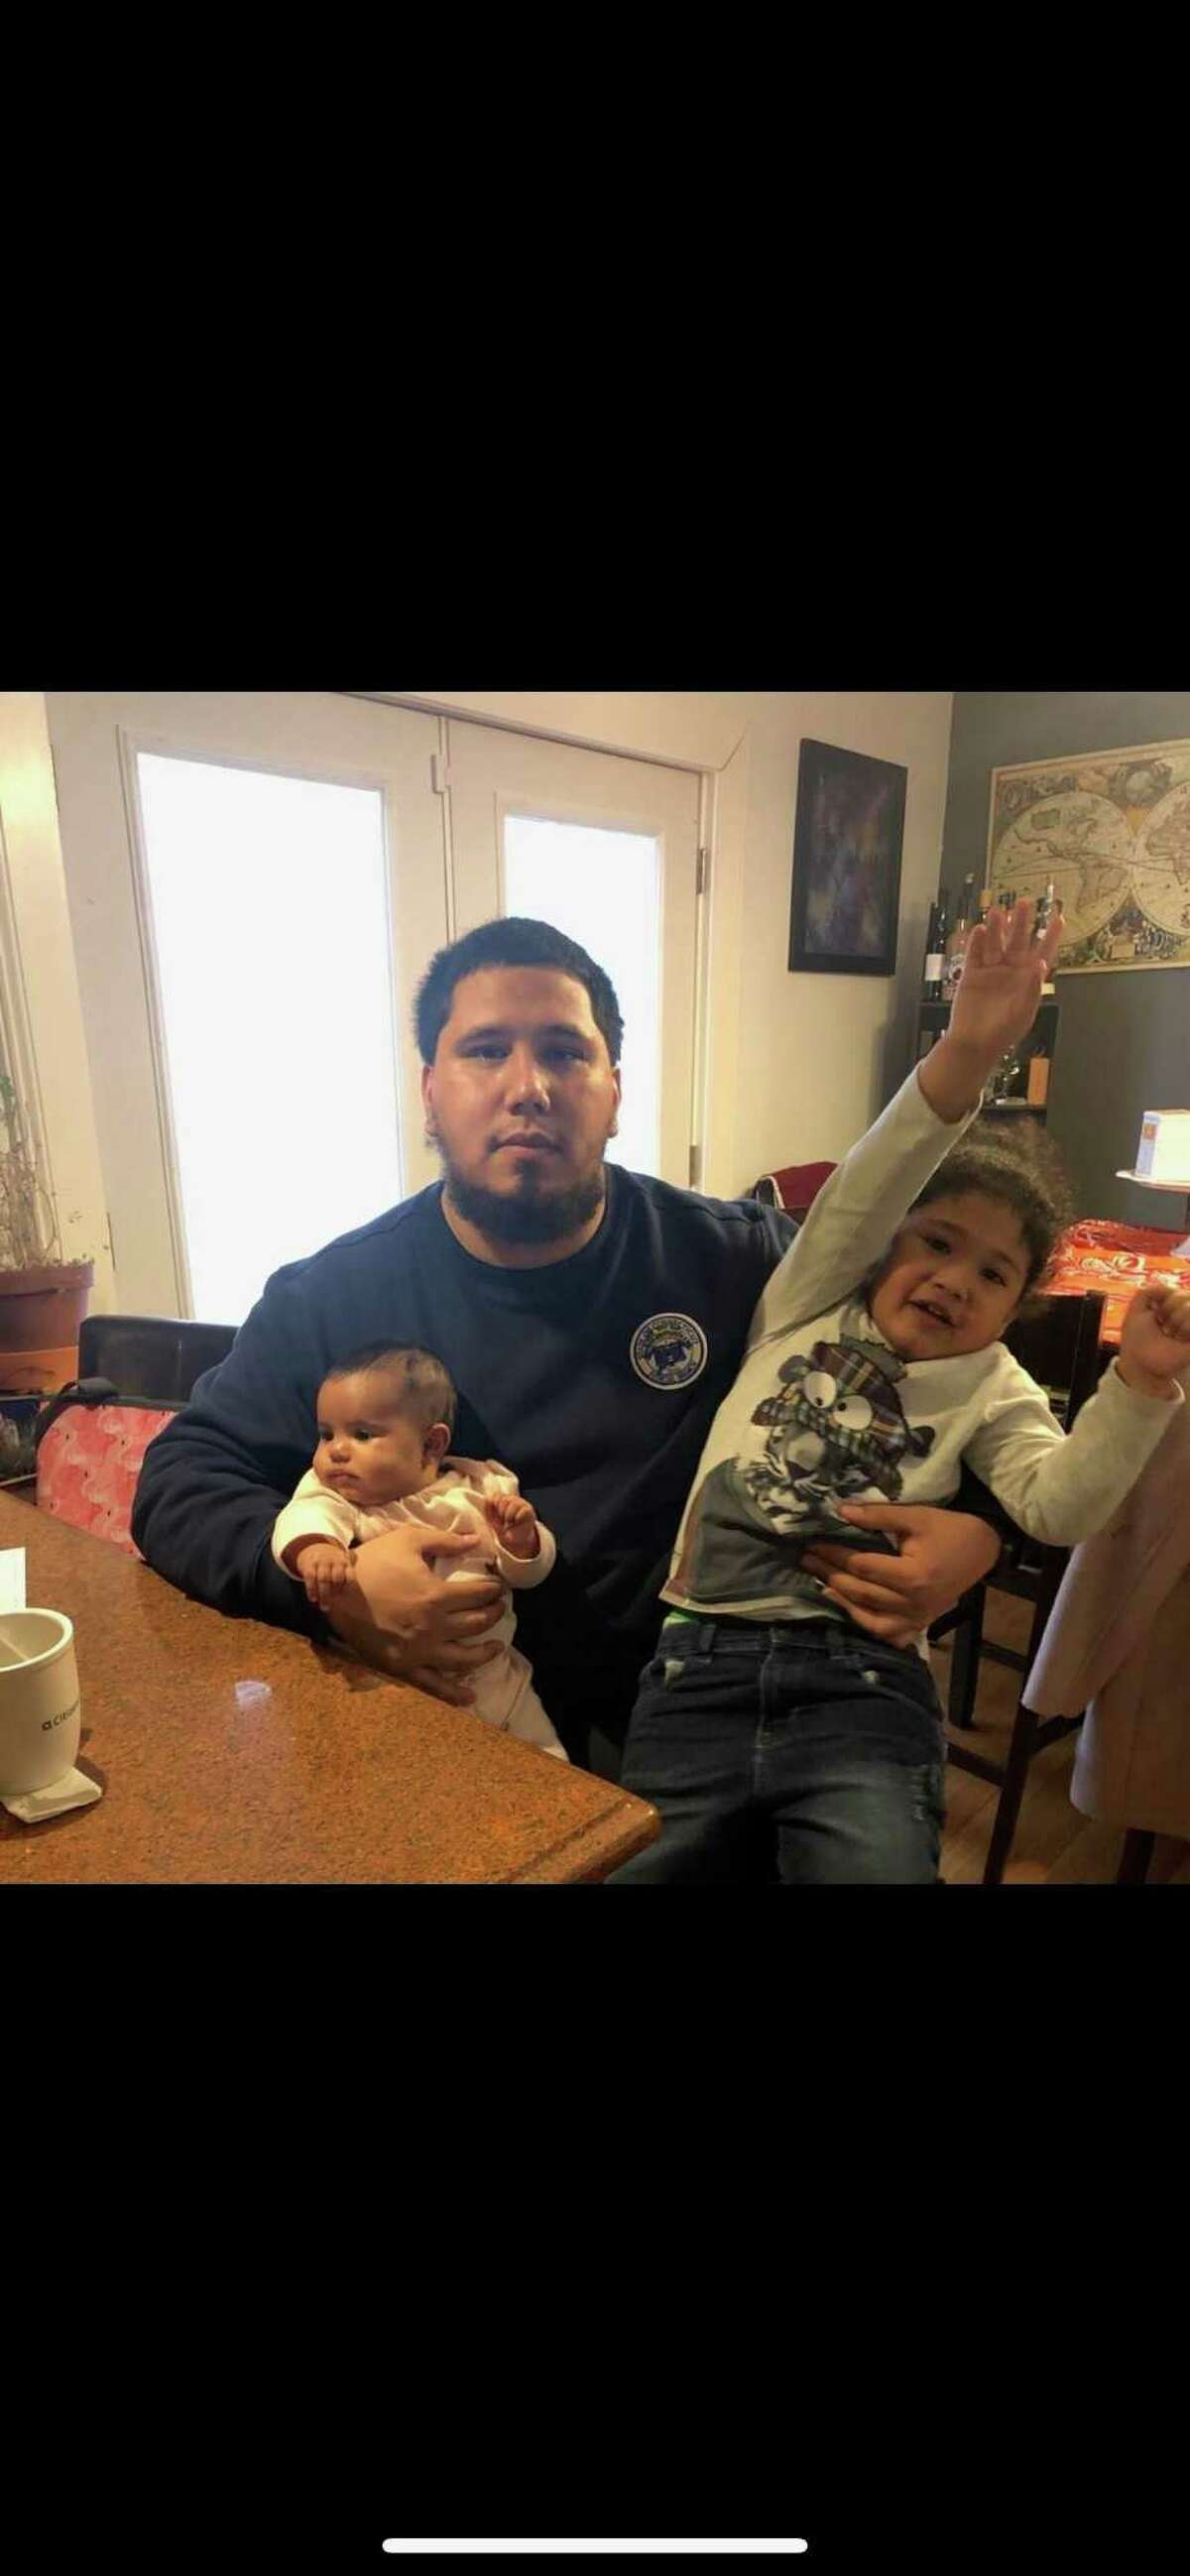 John Corujo, an aspiring New Haven firefighter, recently won a discrimination complaint against the city. Here, he's pictured with his daughter, Joni Corujo, and his son, Kayden Corujo.